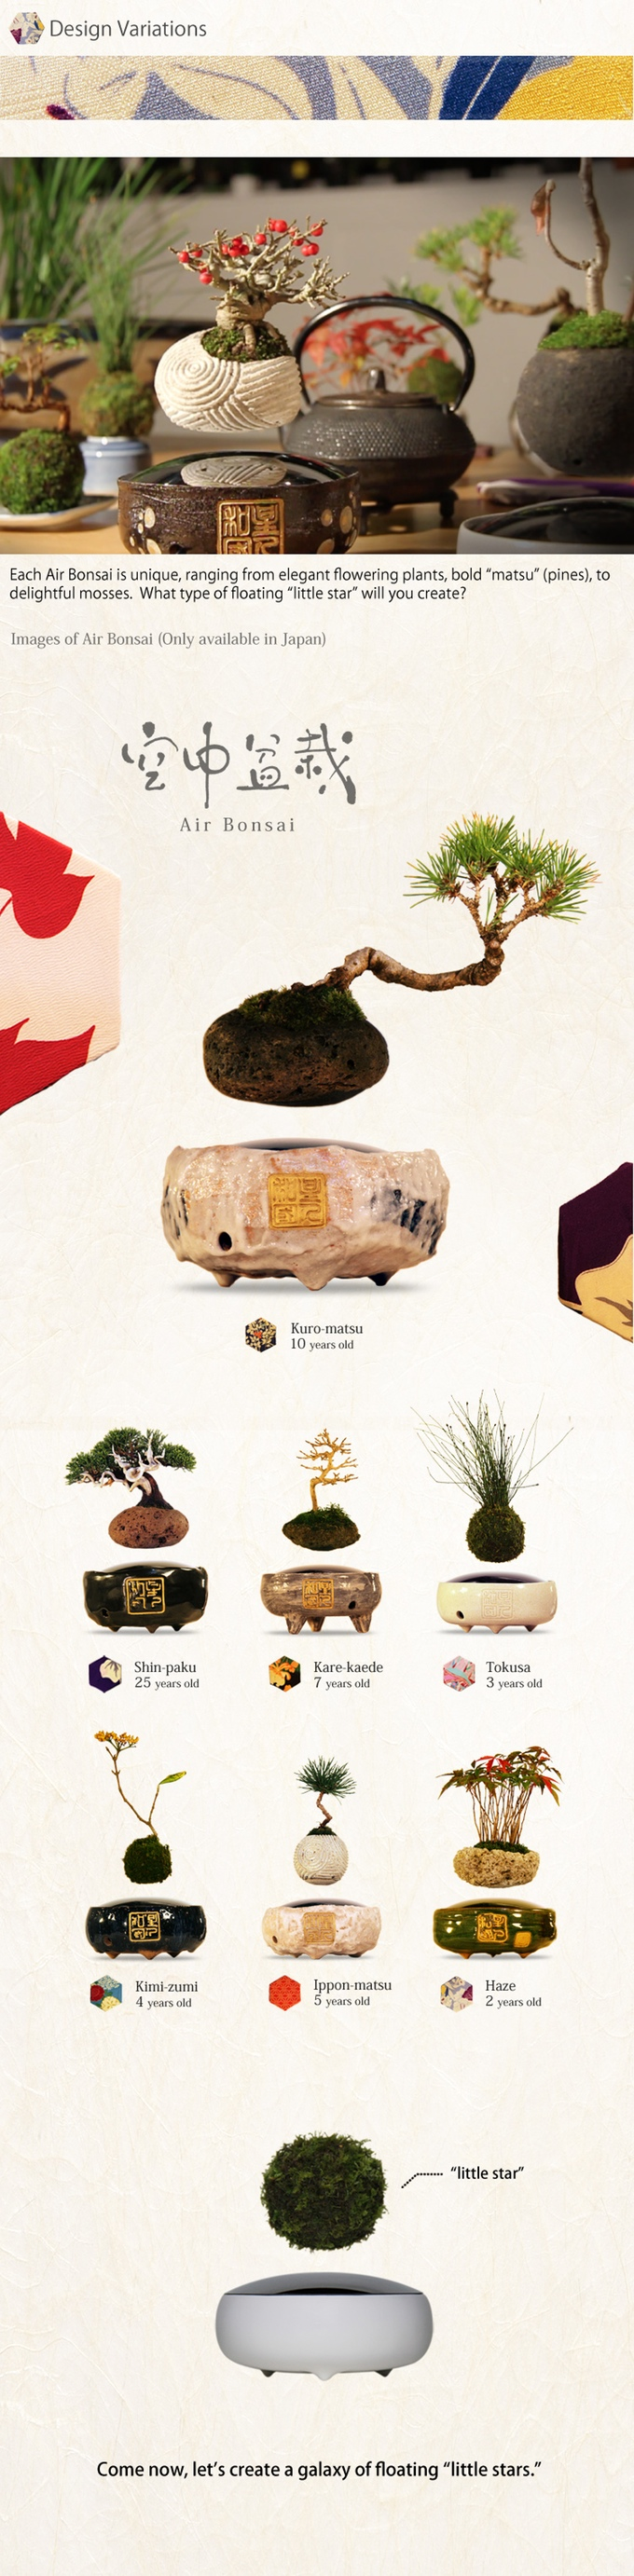 Air Bonsai is one of the most magical creations we've ever seen